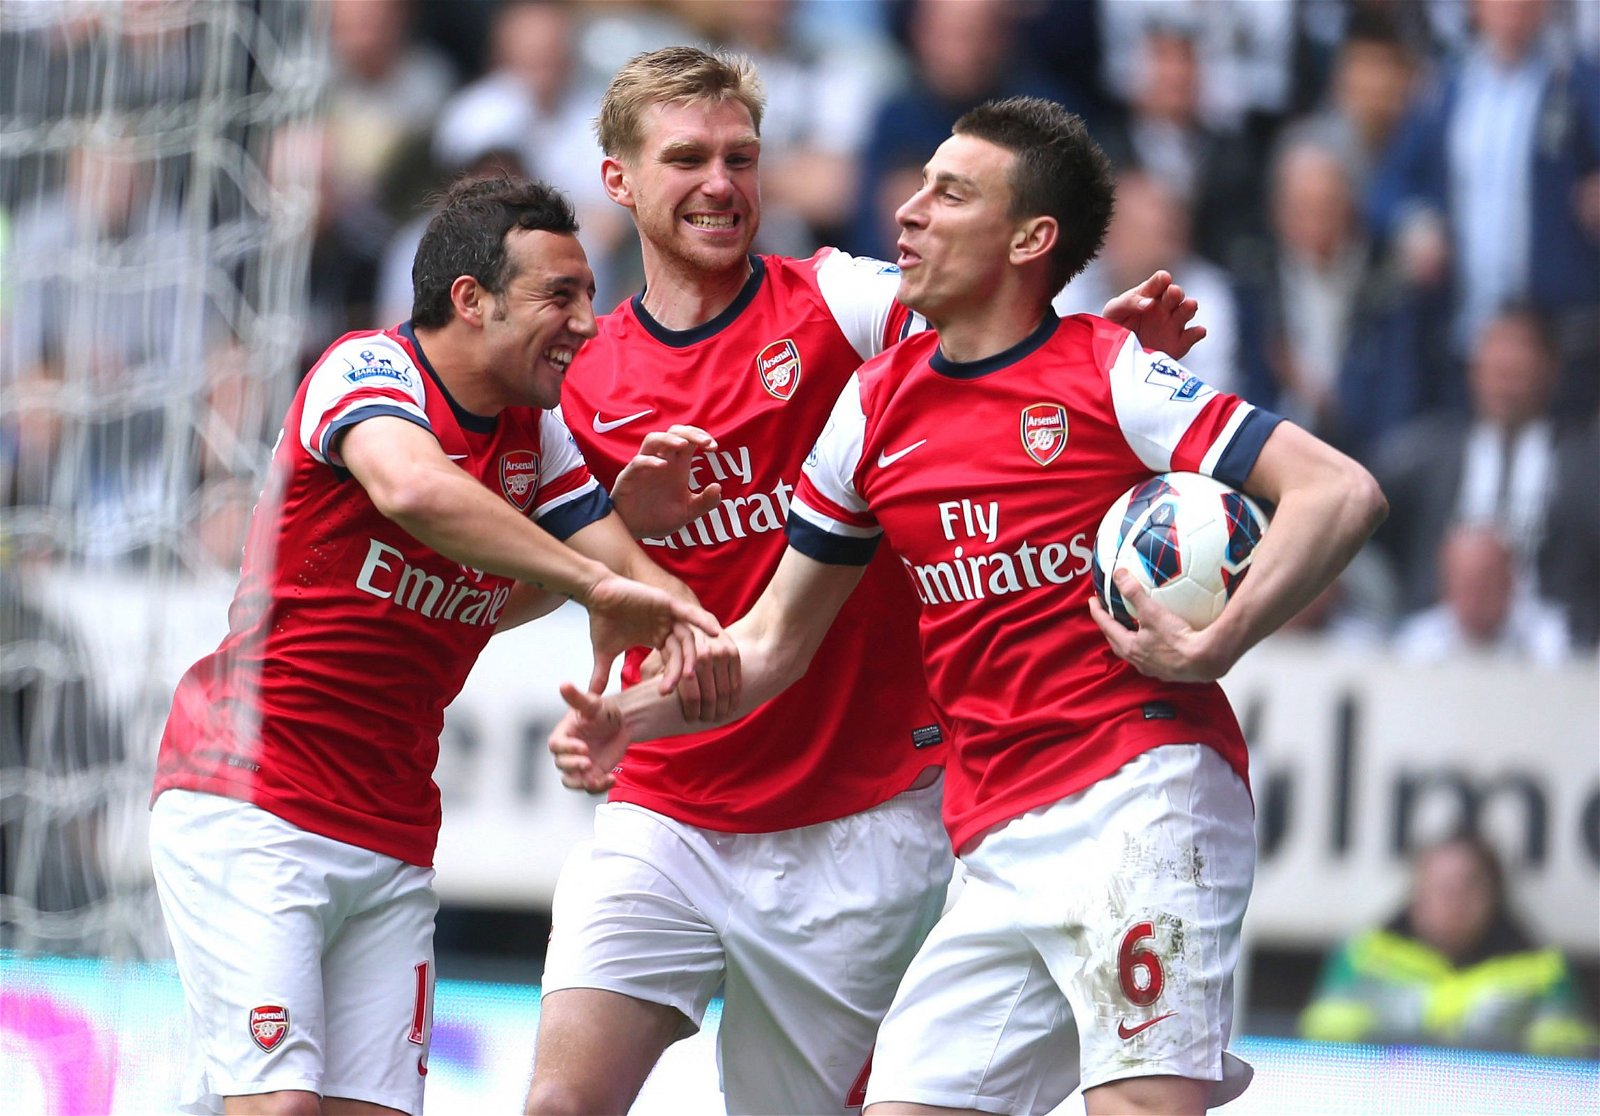 Laurent Koscielny celebrates scoring Arsenal's goal vs Newcastle with Santi Cazorla and Per Mertesacker